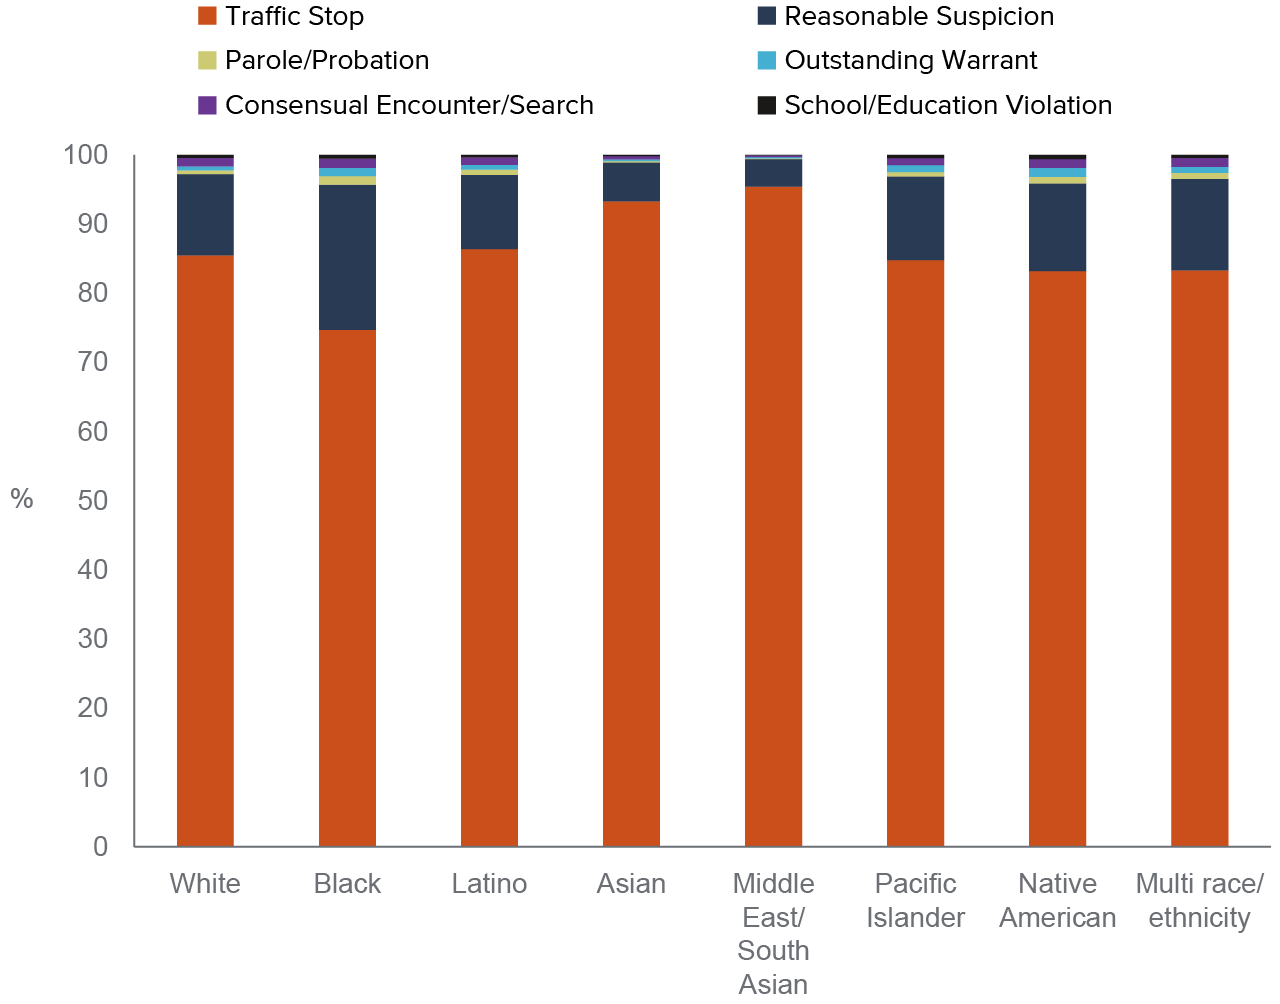 figure 2 - A greater share of Black people than white people are stopped for reasonable suspicion